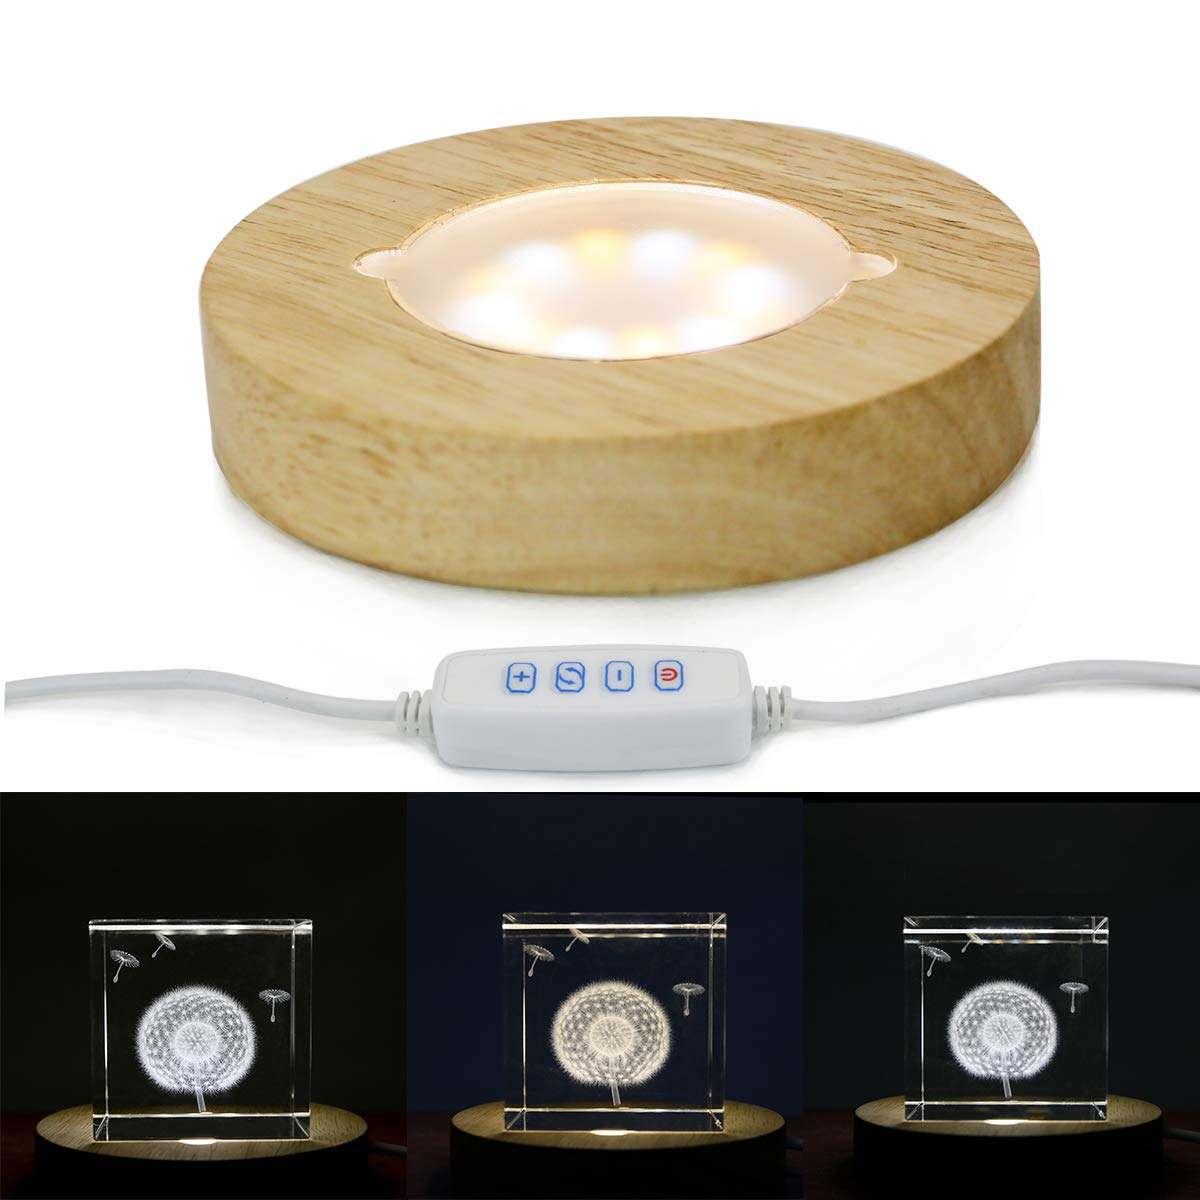 Mintso Wood LED Adjustable Display Base for Glass Crystal/Paperweight,4 Inch White/Warm Lighted by Mintso